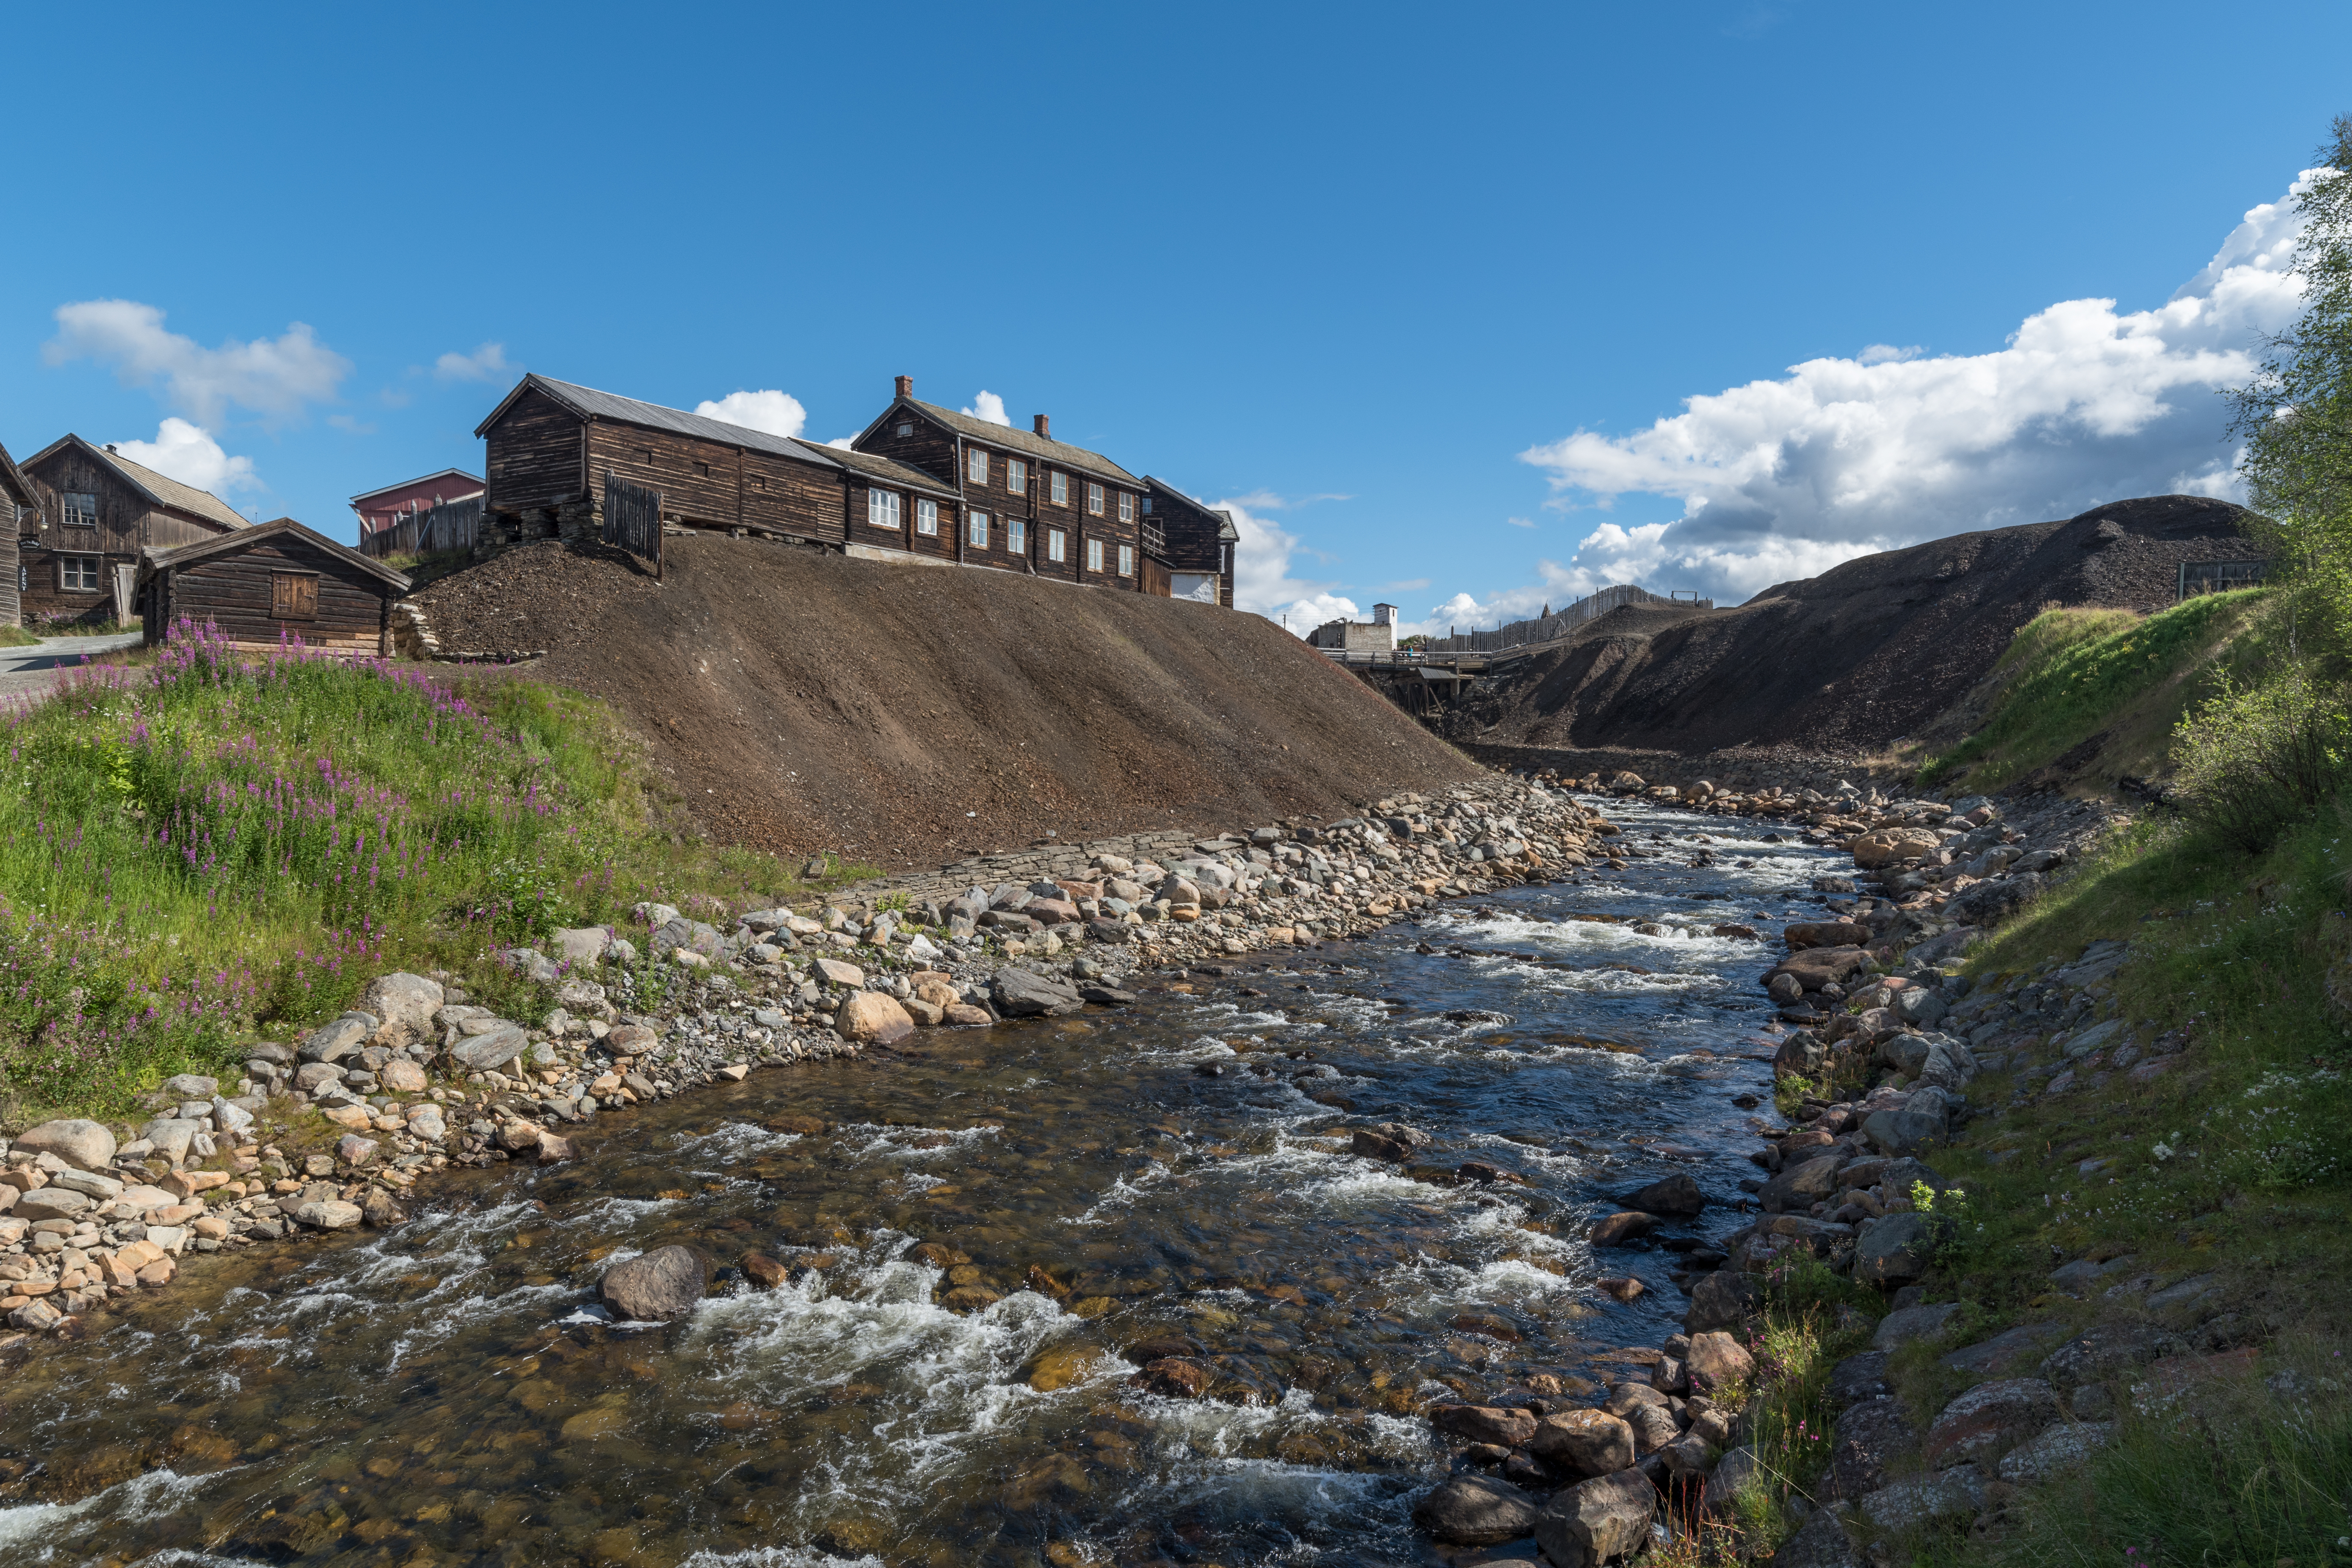 Old mine buildings in Røros with a river